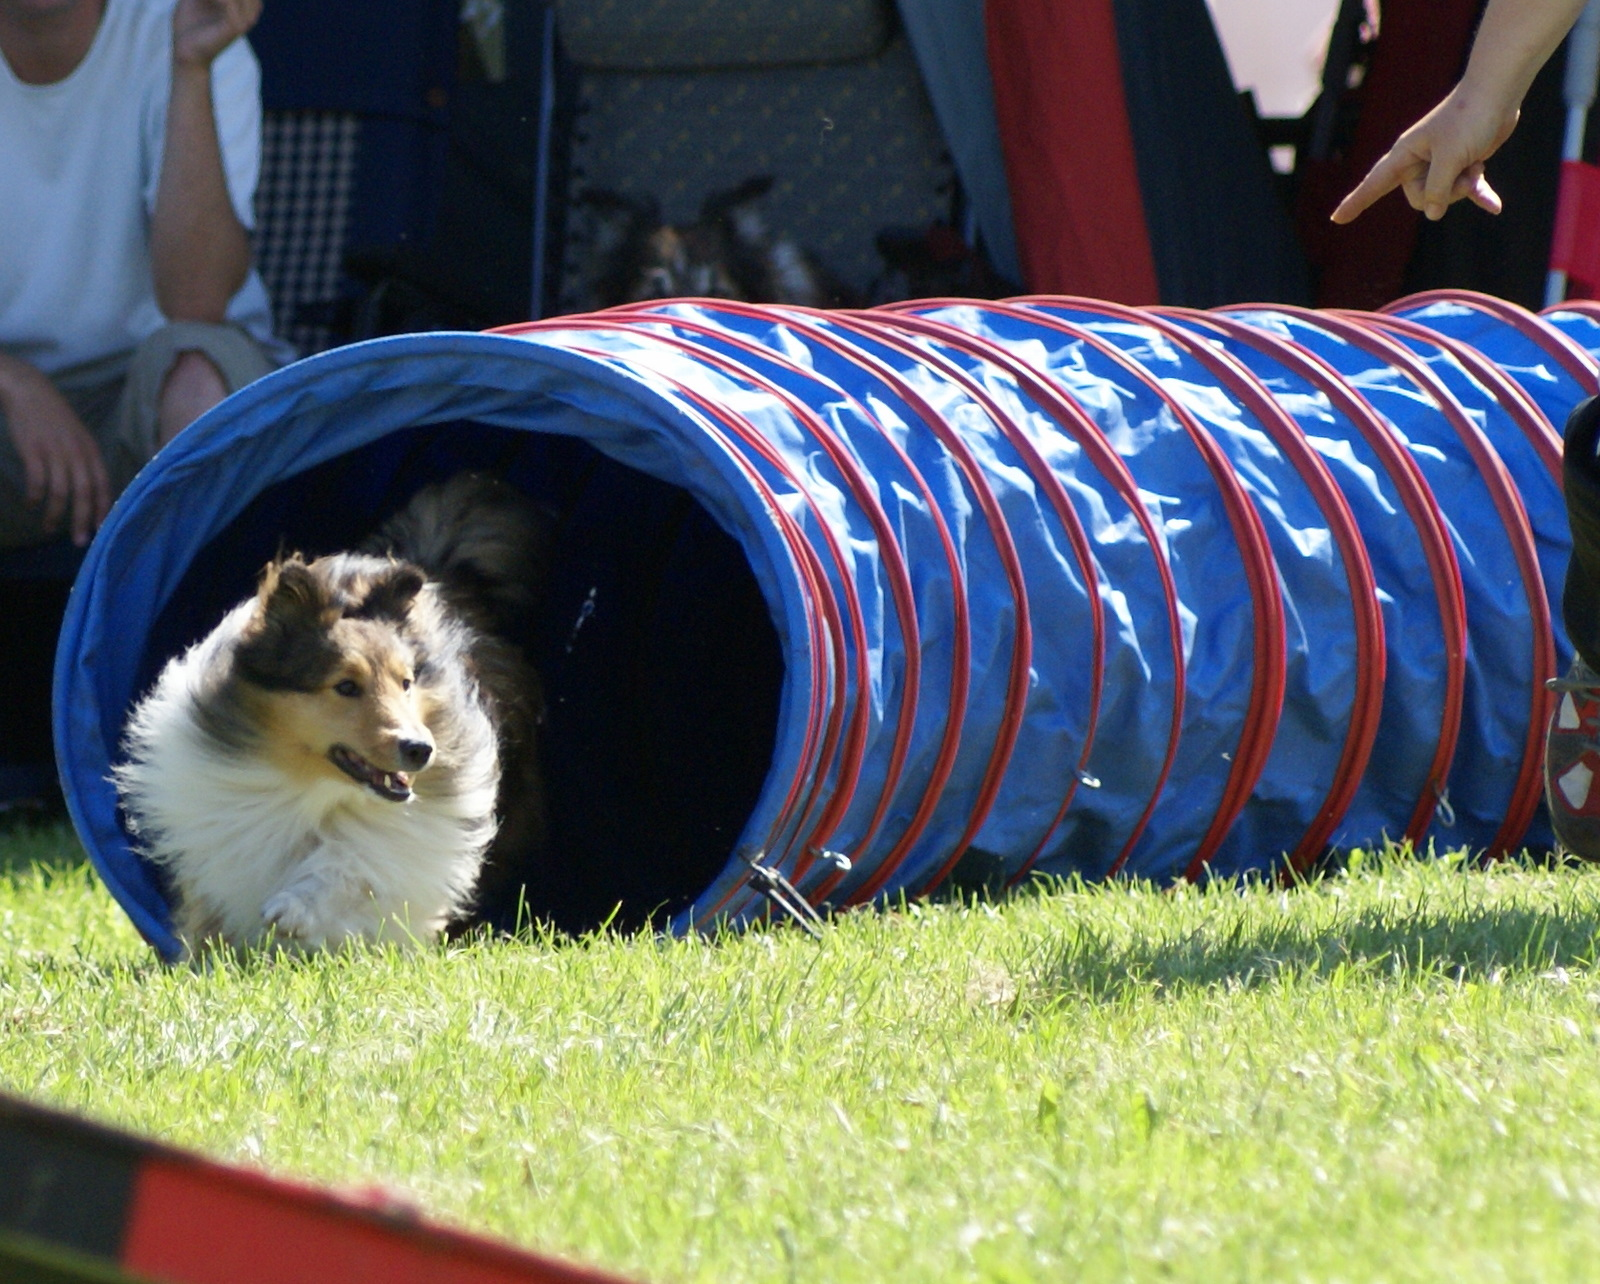 Shetland Sheepdog in the competition wallpaper